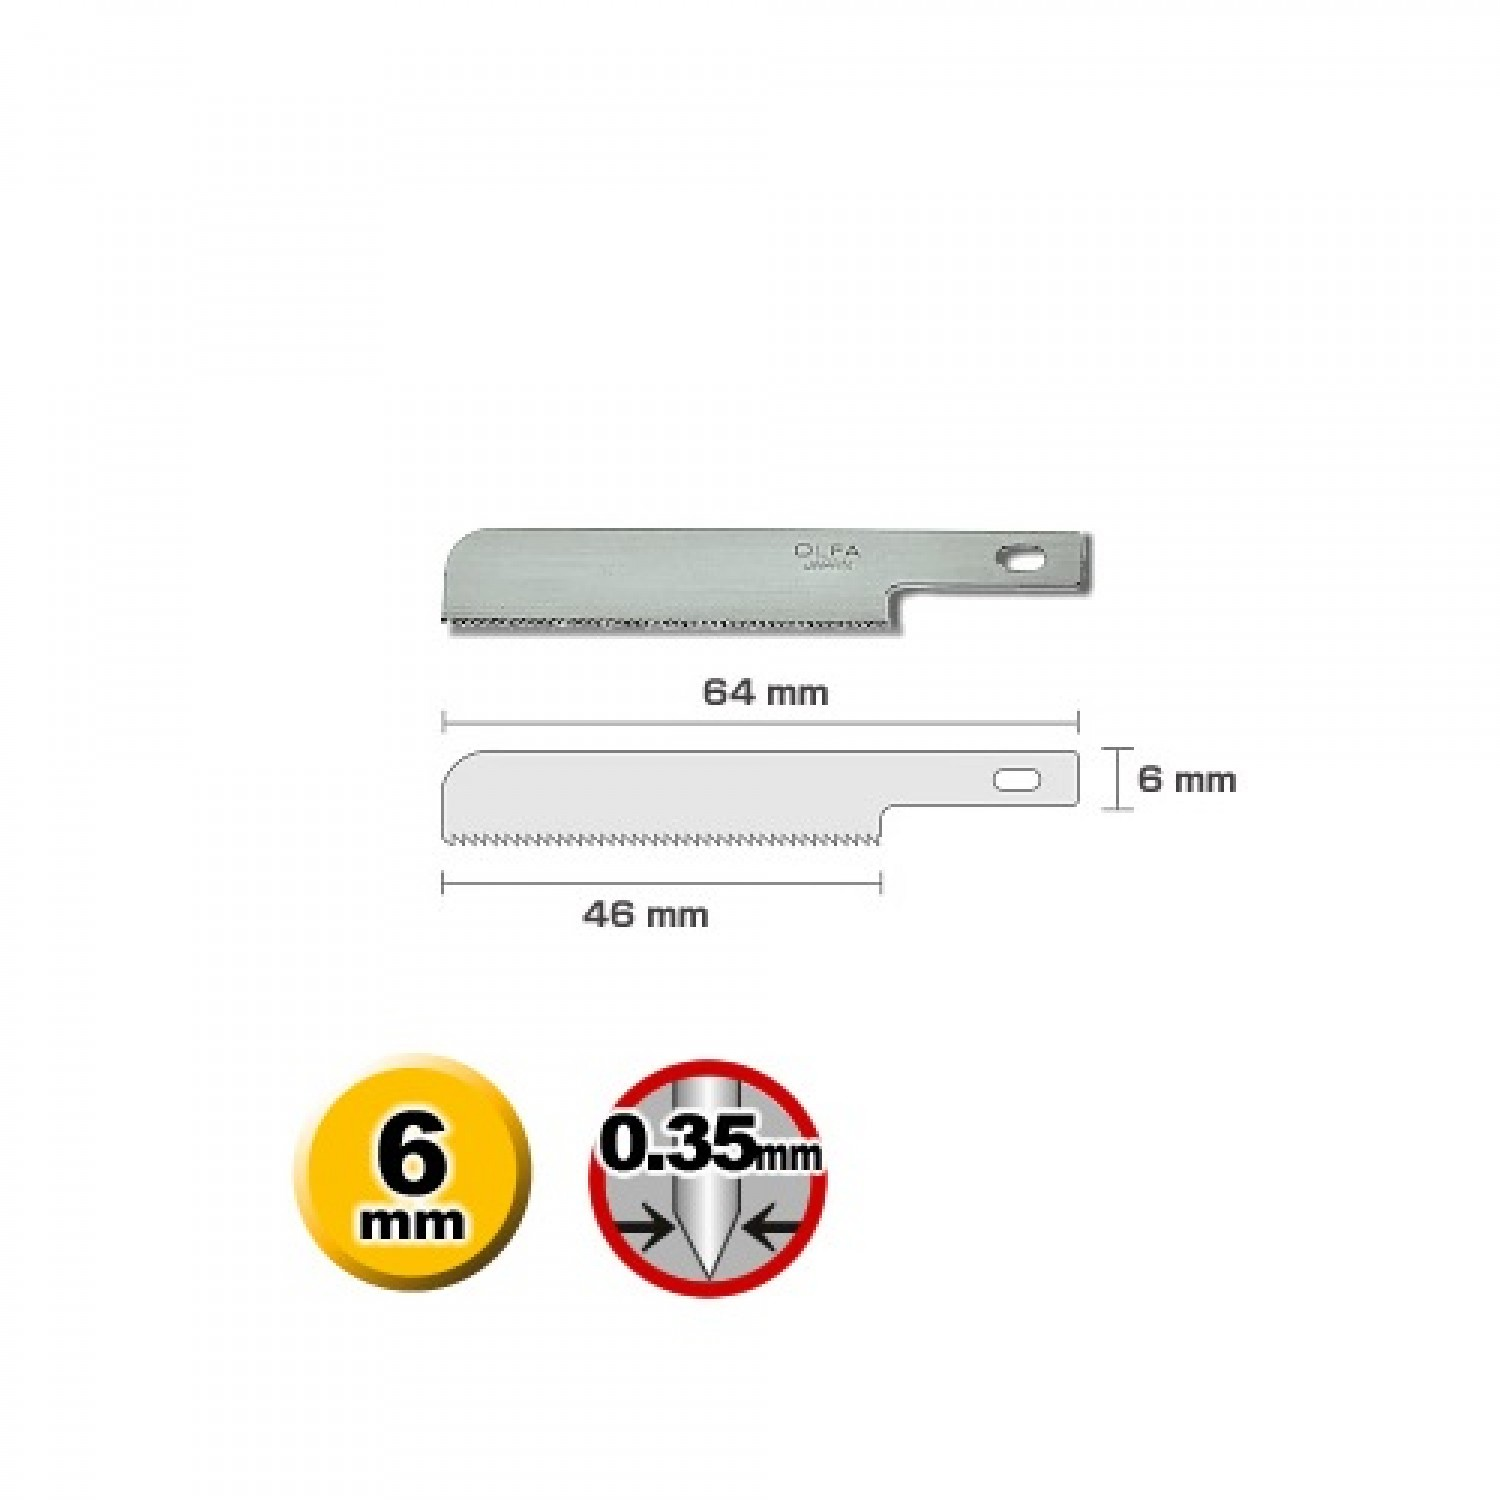 Olfa KB4-WS-3 Craft Saw Blade Dimensions